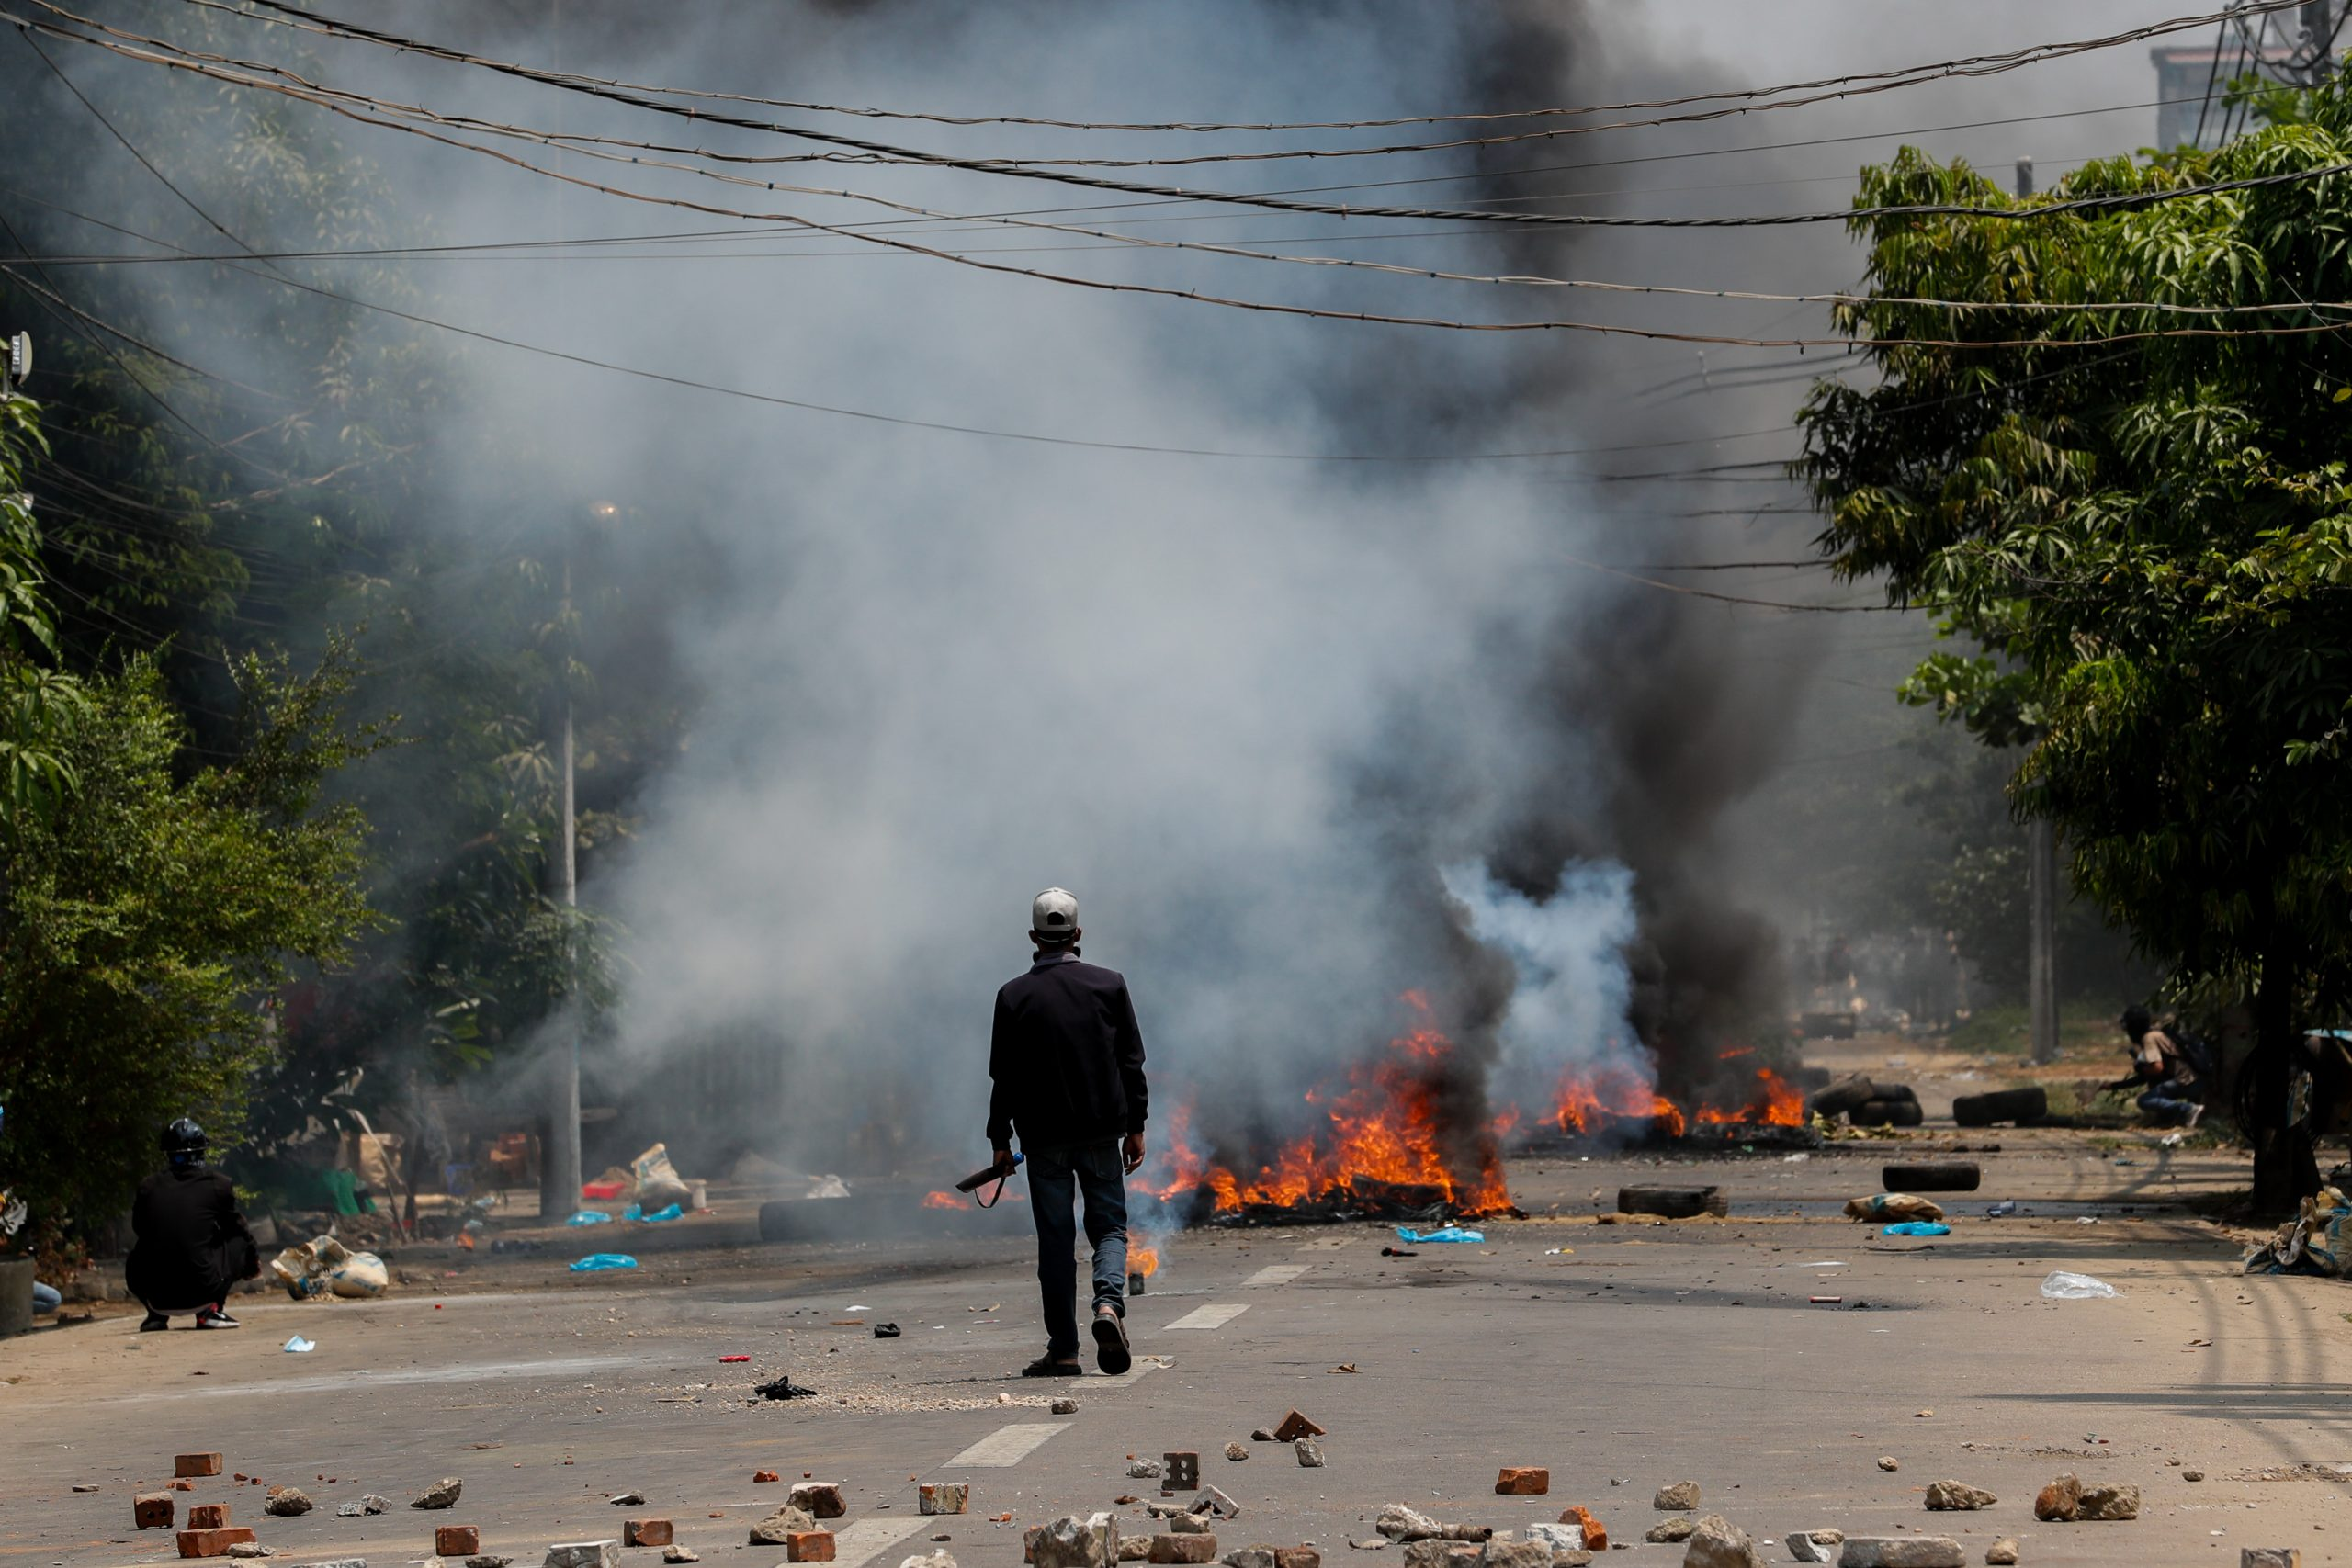 A protester in Yangon's Thaketa Township walks along a smoke-filled road earlier today. (Frontier)